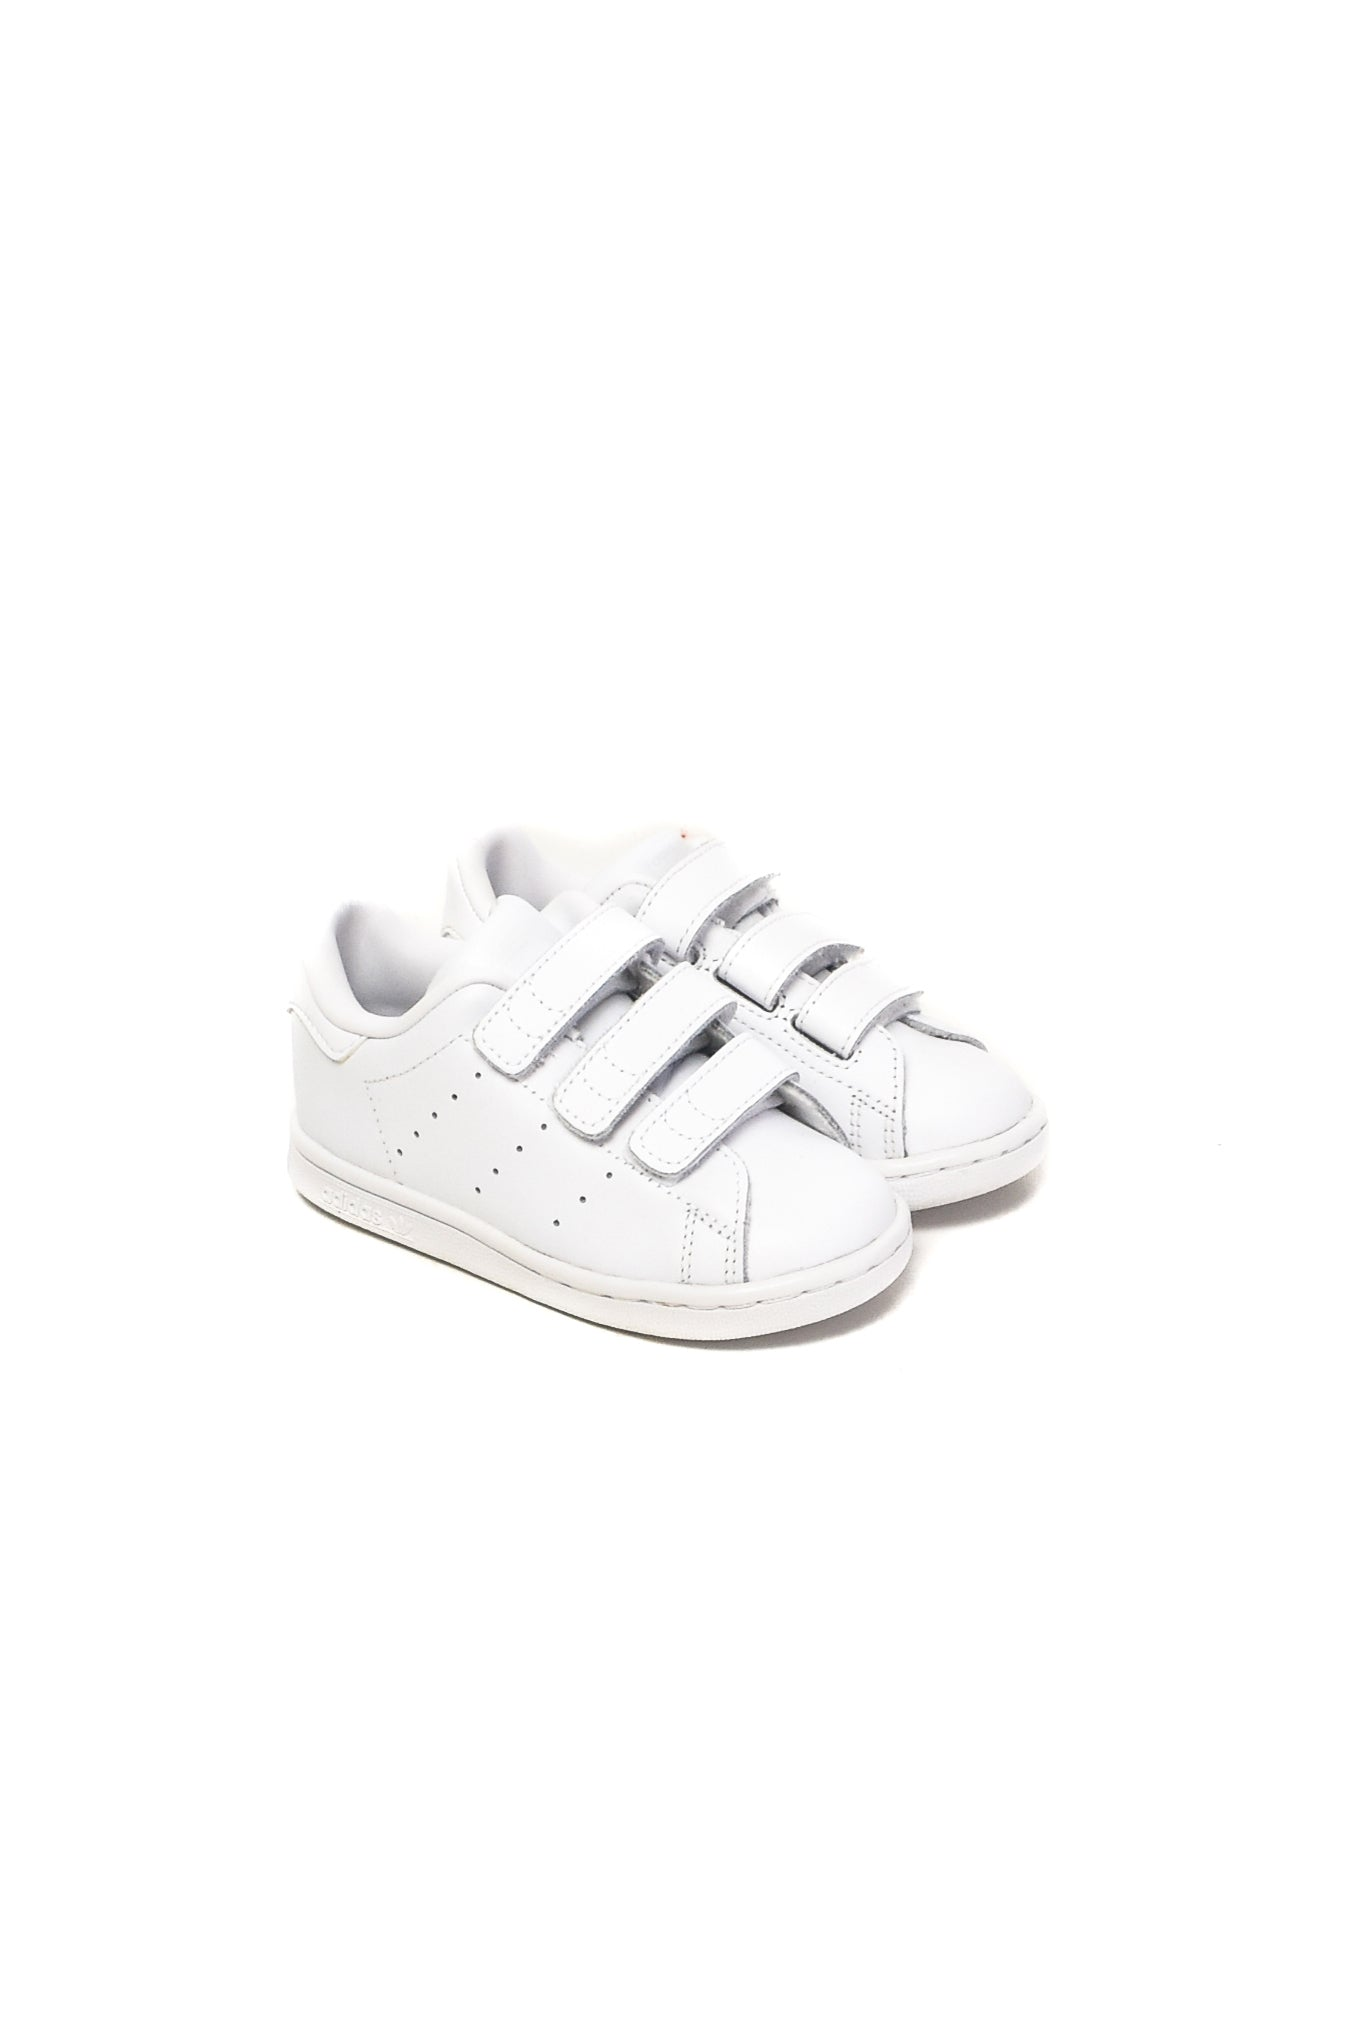 10007032 Adidas Kids~Shoes 3T (US 8) at Retykle